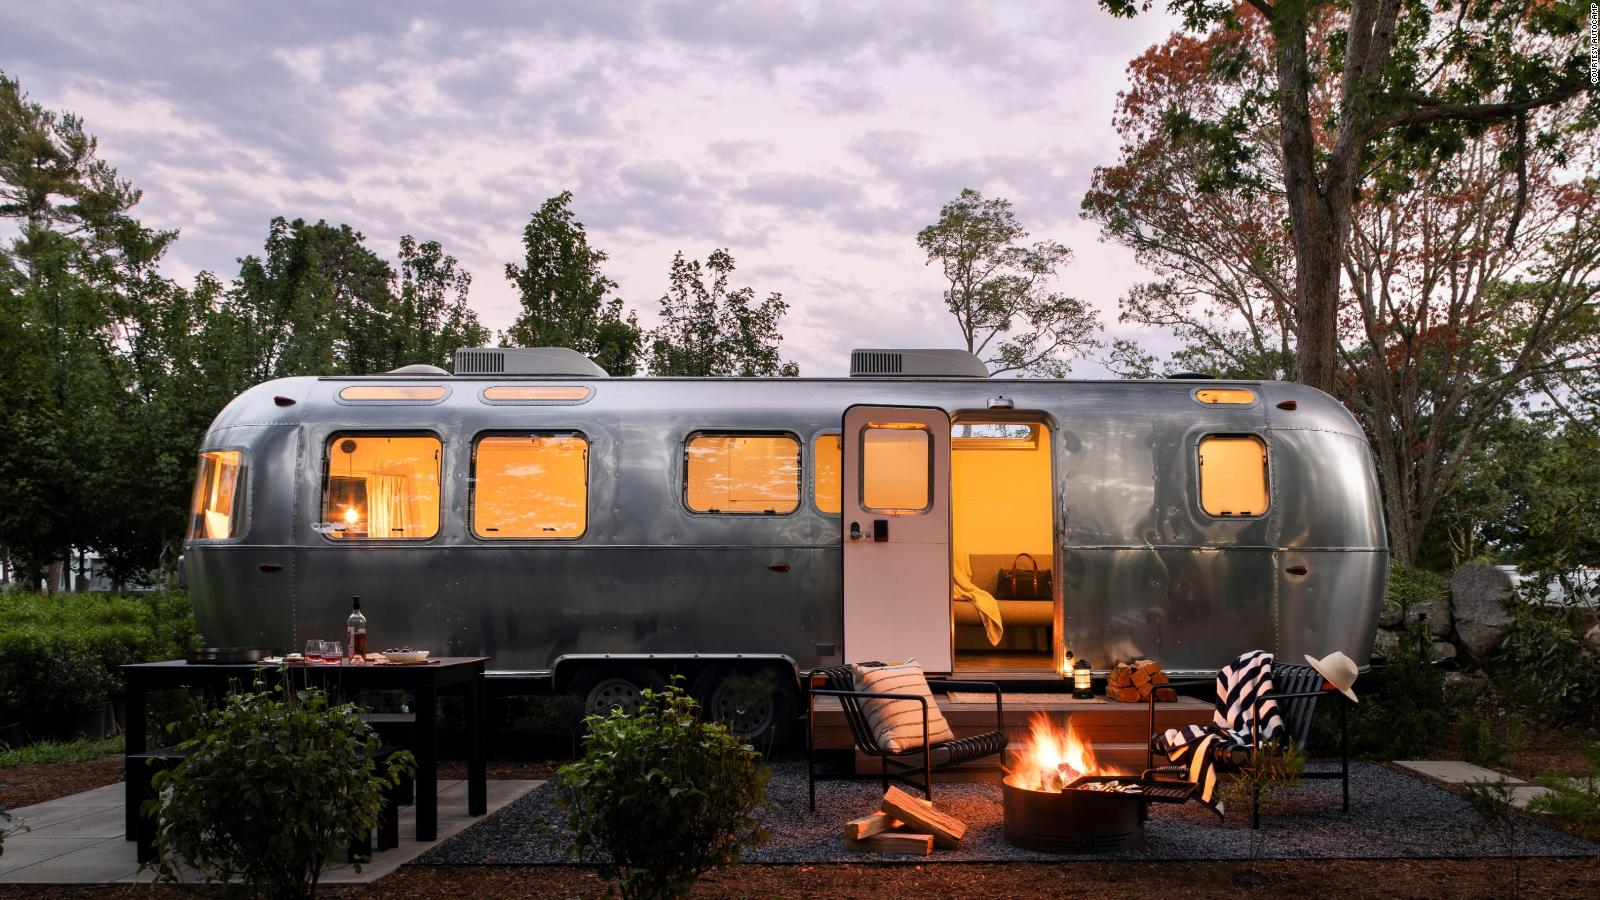 Vintage Travel Trailer Vacations Get A Pandemic Boost Cnn Travel Used rvs by owner is a for sale by owner website with no dealer ads to compete with. vintage travel trailer vacations get a